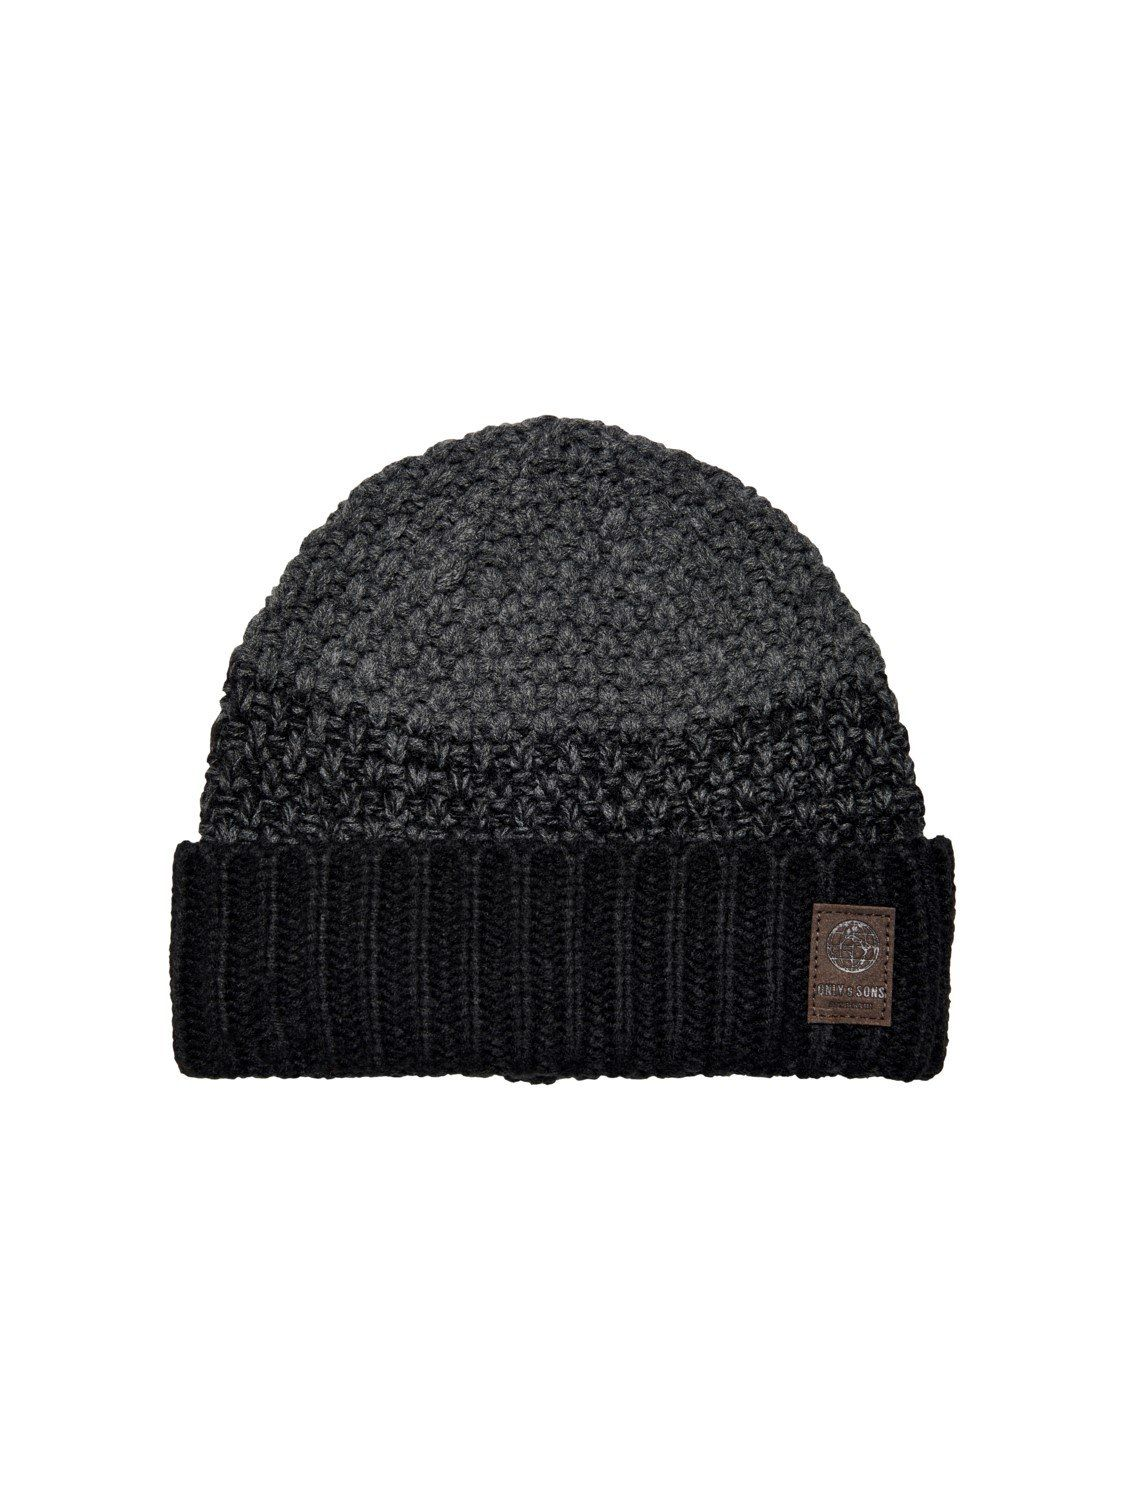 Cenz Knit Beanie Black Stripes One Size